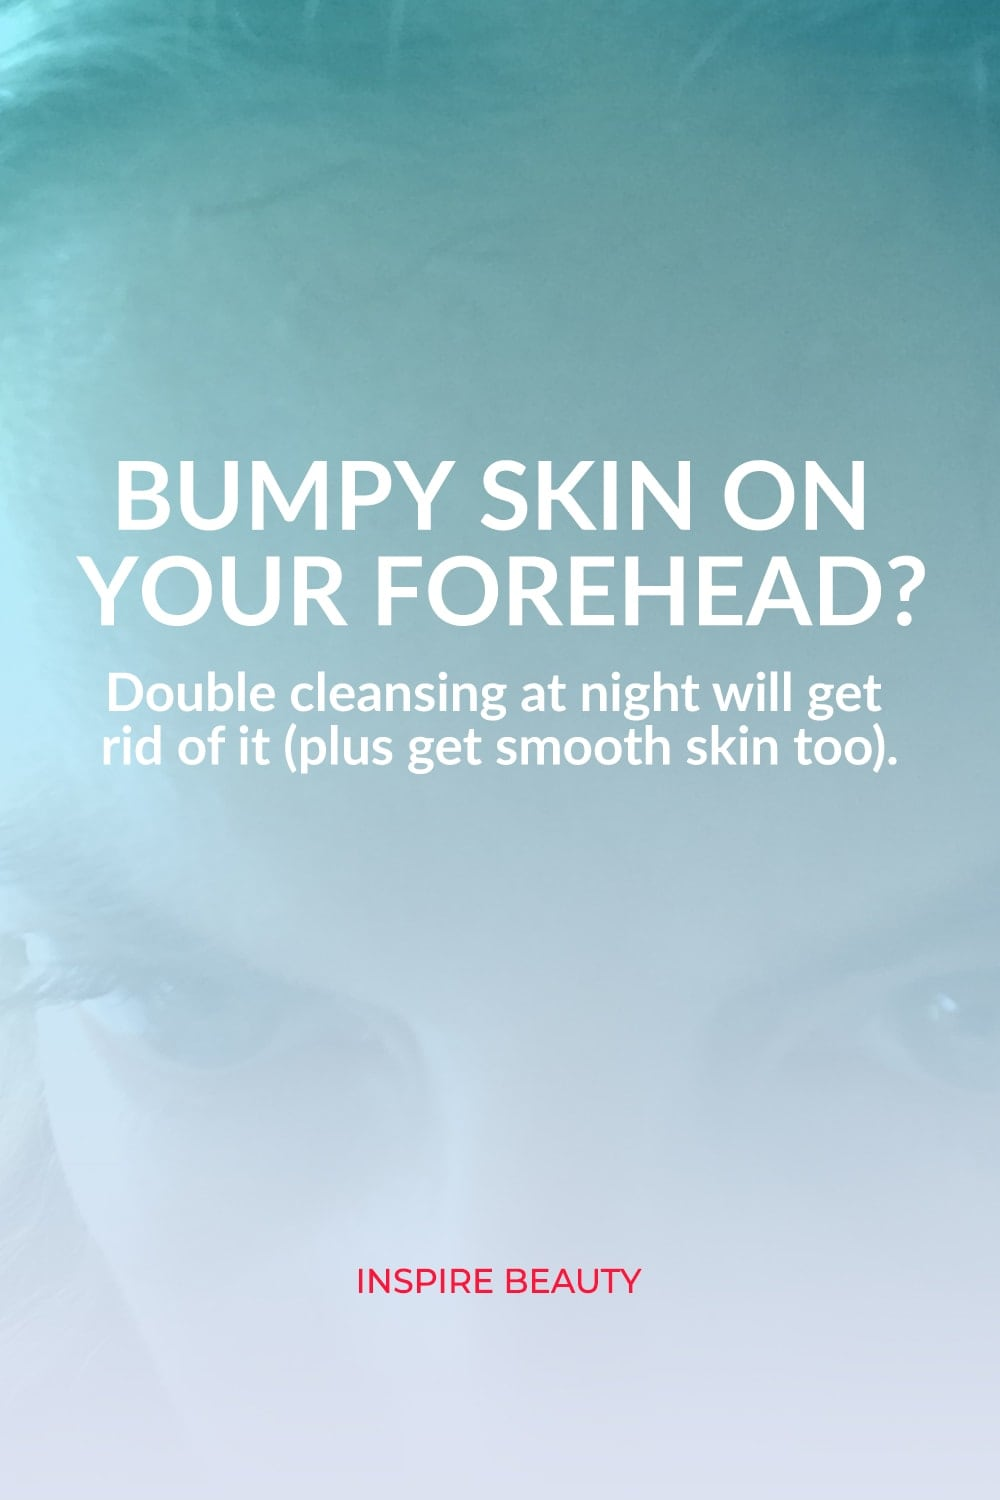 How to get rid of bumpy forehead texture with double cleansing.